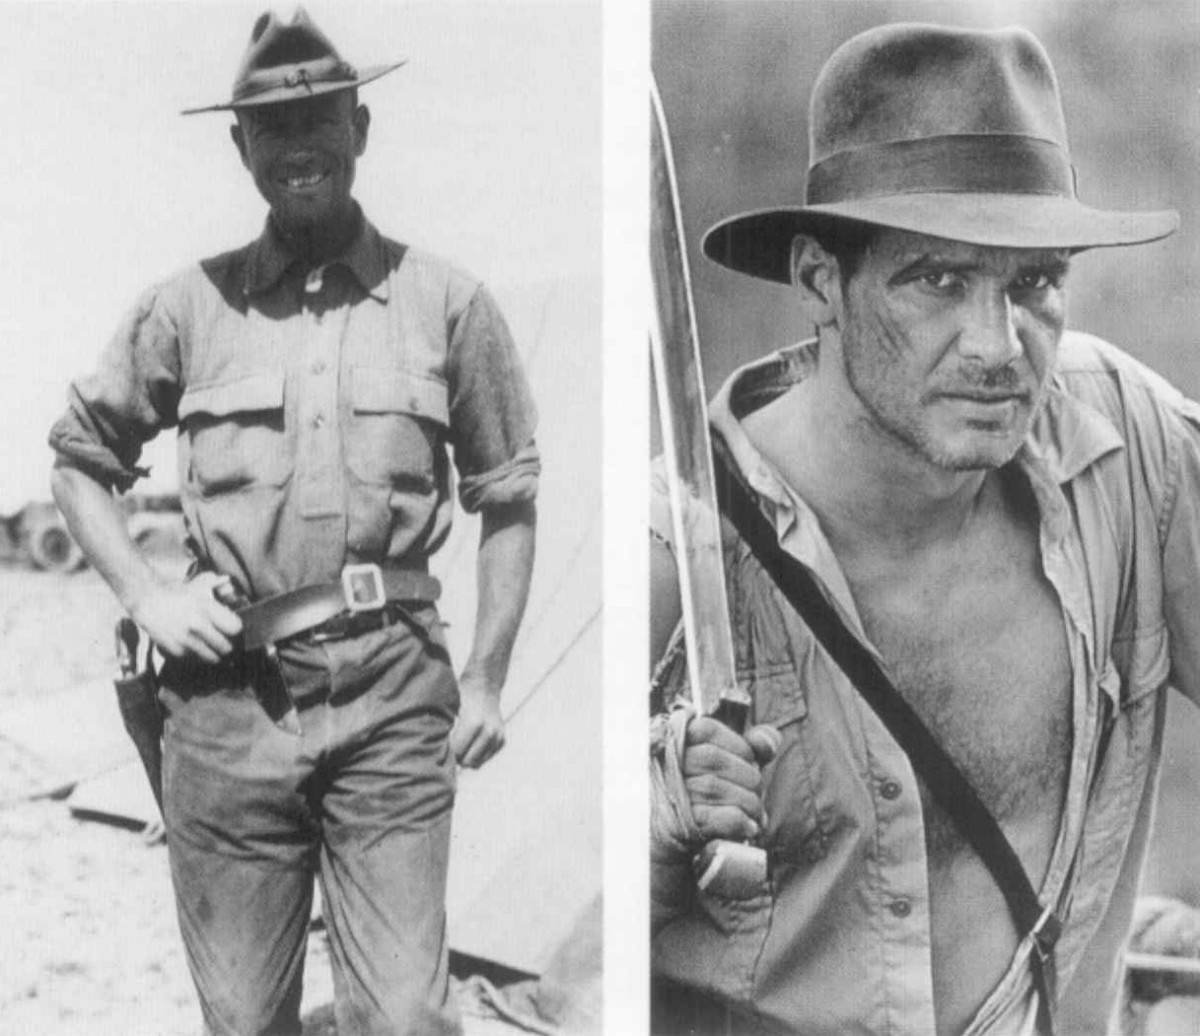 Roy Chapman Andrews on left and Indiana Jones on right.